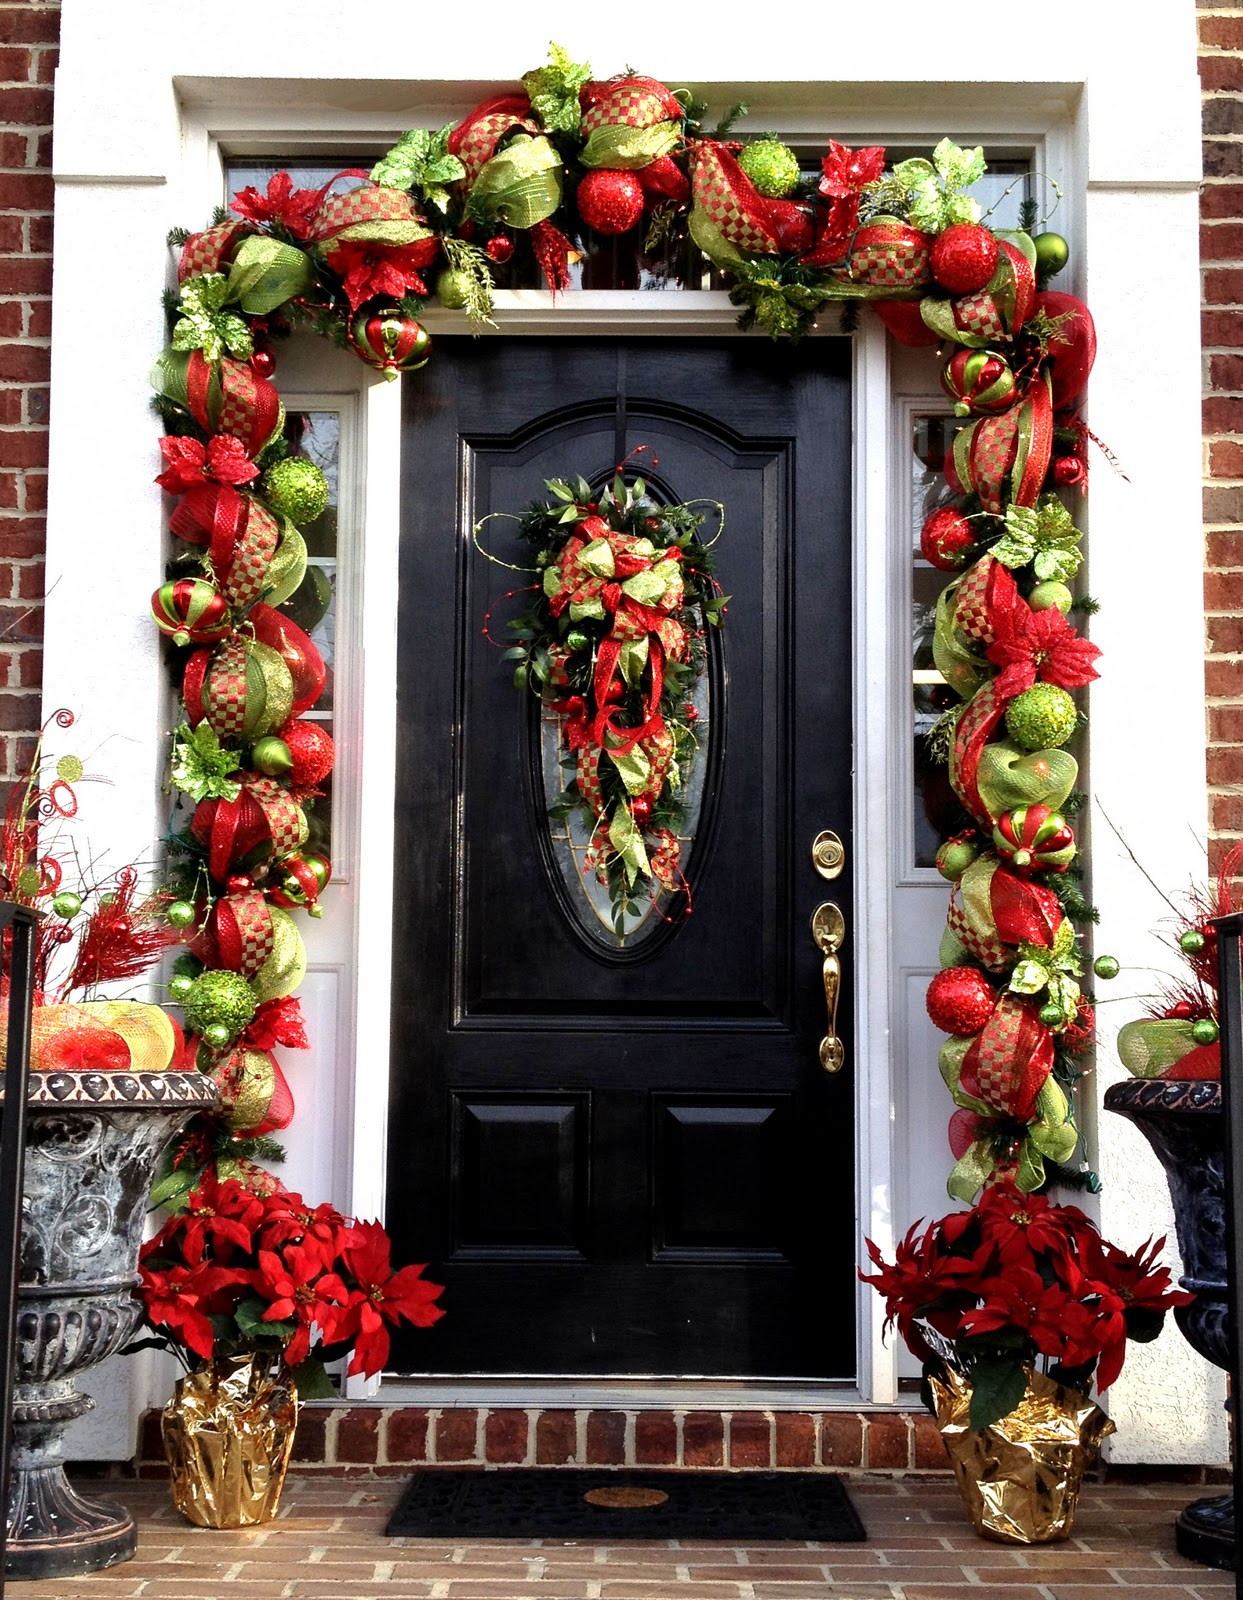 50 Best Outdoor Christmas Decorations For 2016. Houston Texans Christmas Decorations. Christmas Table Decorations Purple And Silver. Christmas Decorations For Living Room Tables. Christmas Decoration Kitchen Ideas. Outdoor Christmas Decorations Wholesale. Christmas Door Decorations Ideas For School. Easy To Make Christmas Decorations And Crafts. Sunset Magazine Christmas Decorations